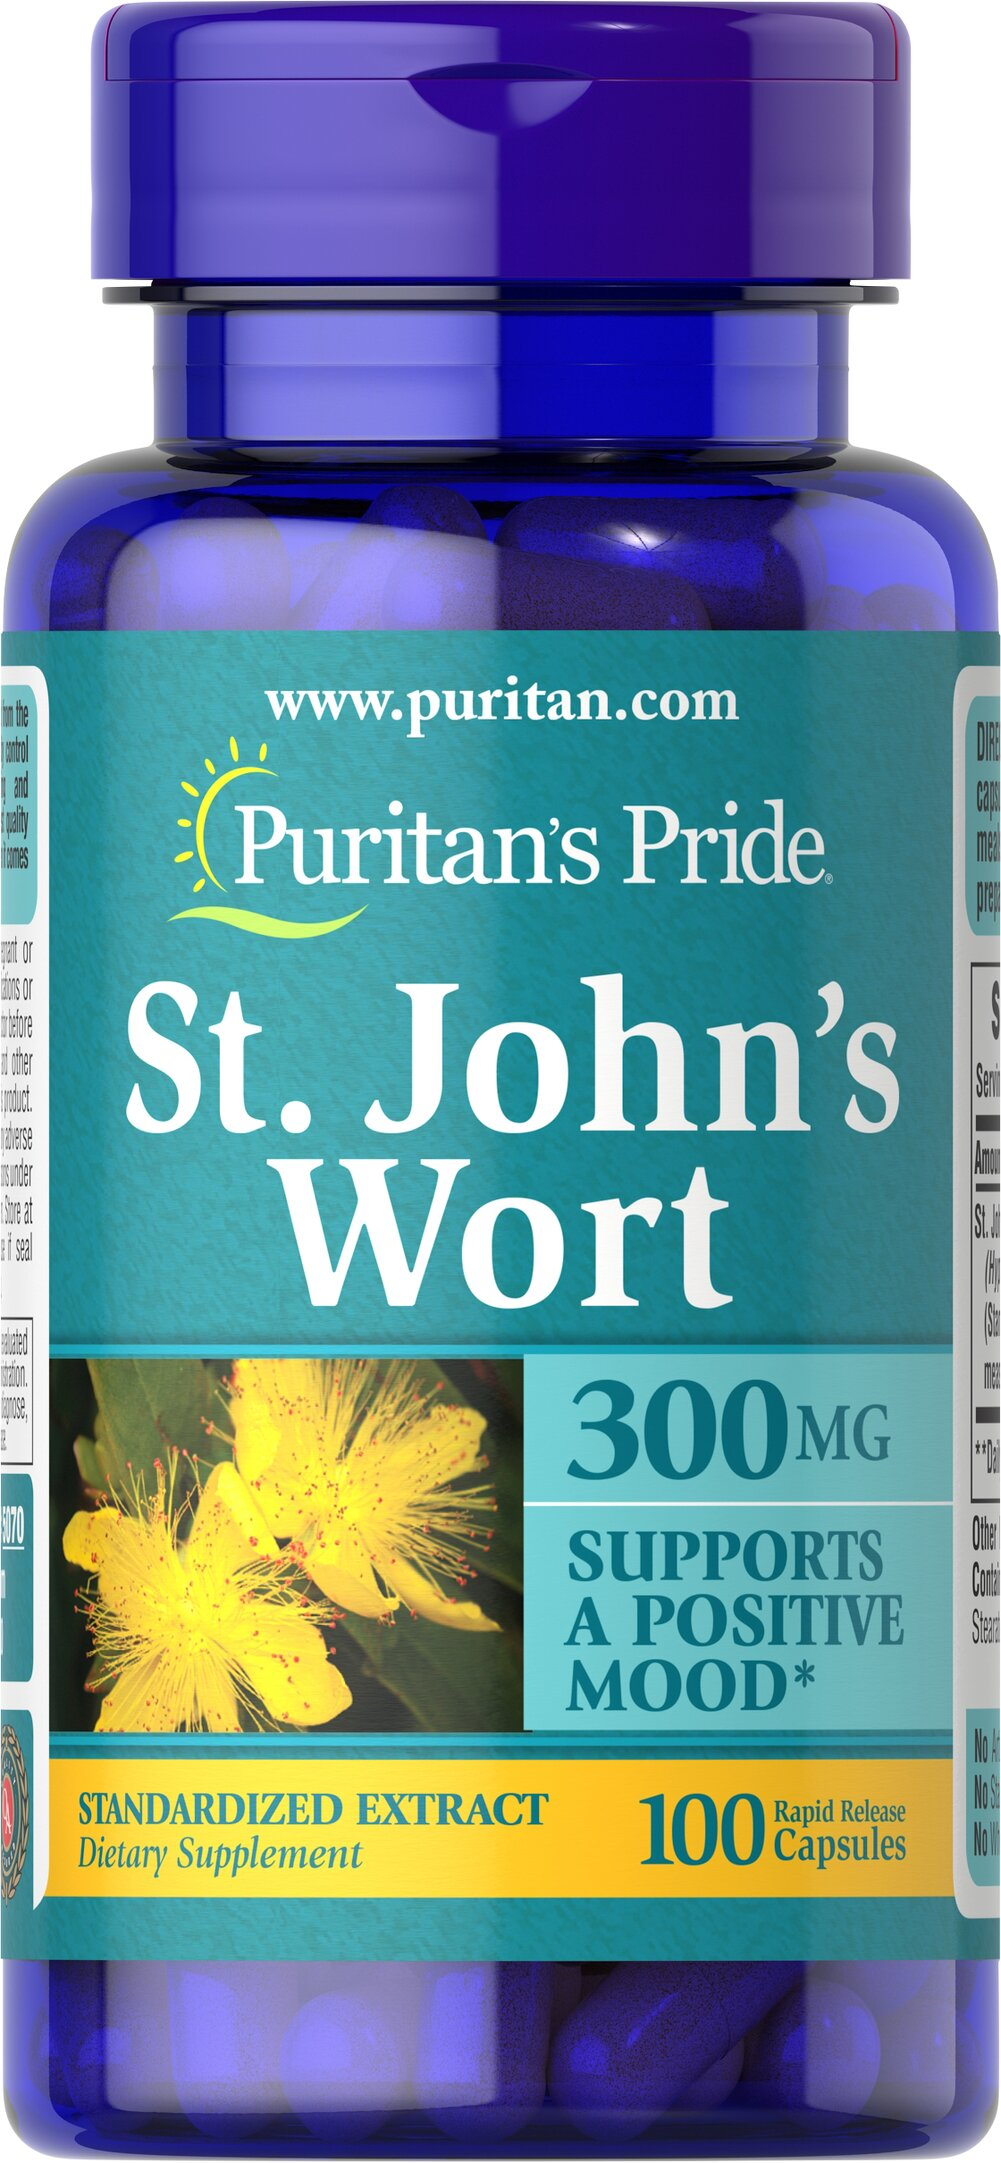 St. John's Wort Standardized Extract 300 mg  100 Capsules 300 mg $15.18